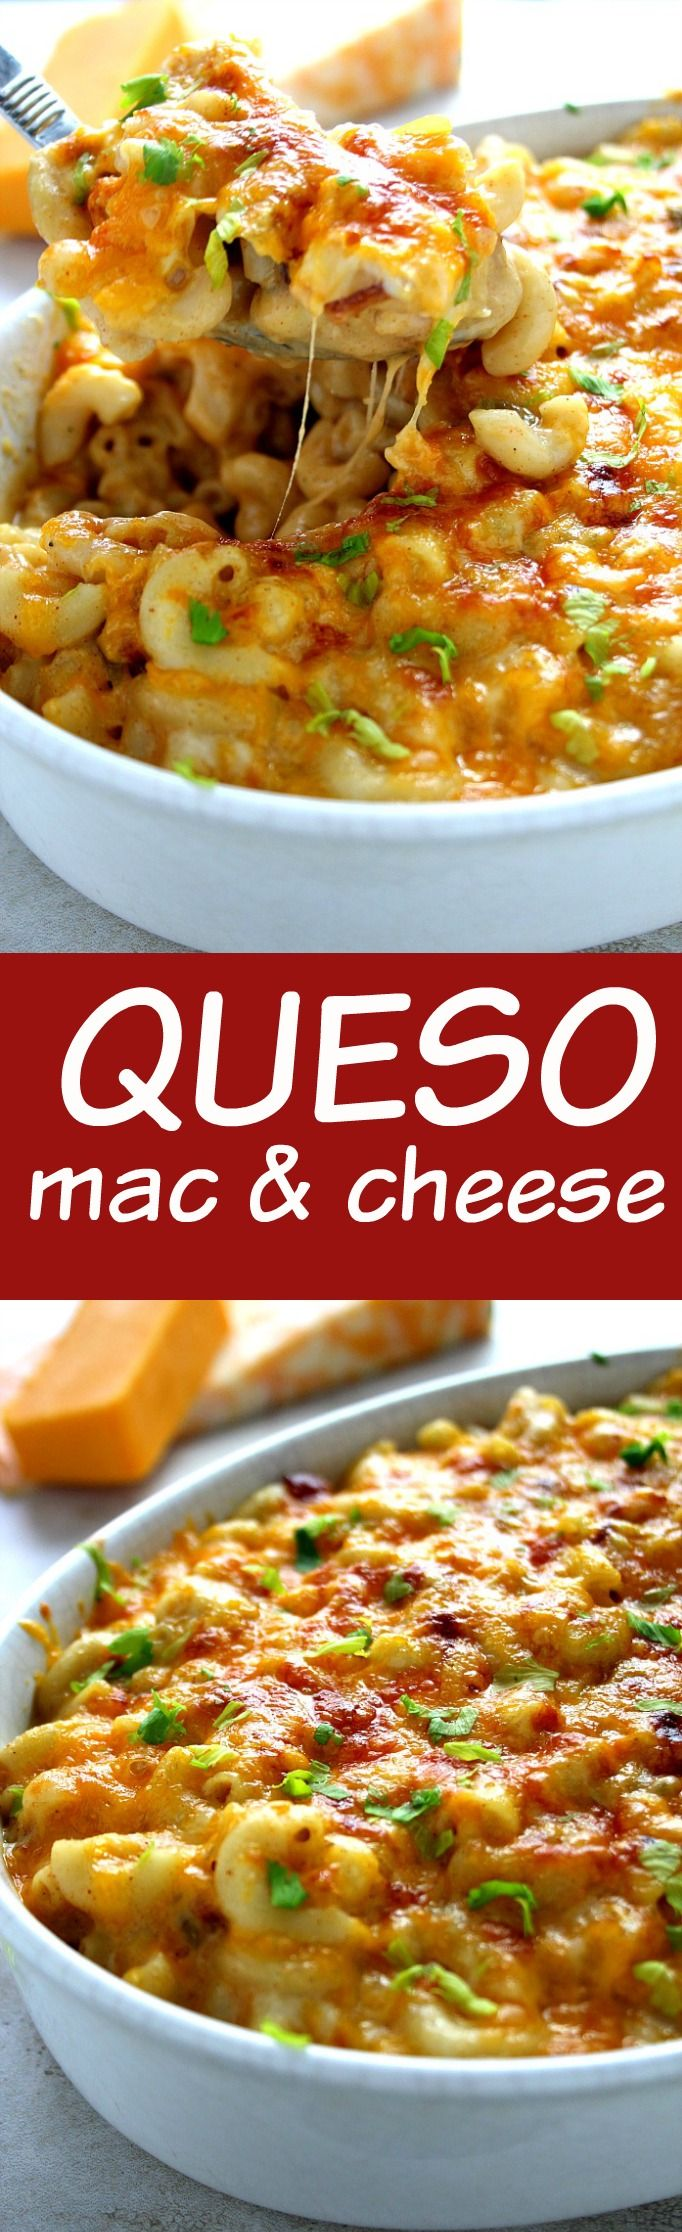 Queso Mac and Cheese with Bacon – cheesy macaroni baked in creamy, spicy queso sauce with bacon. Cheese lovers – this one is for you!